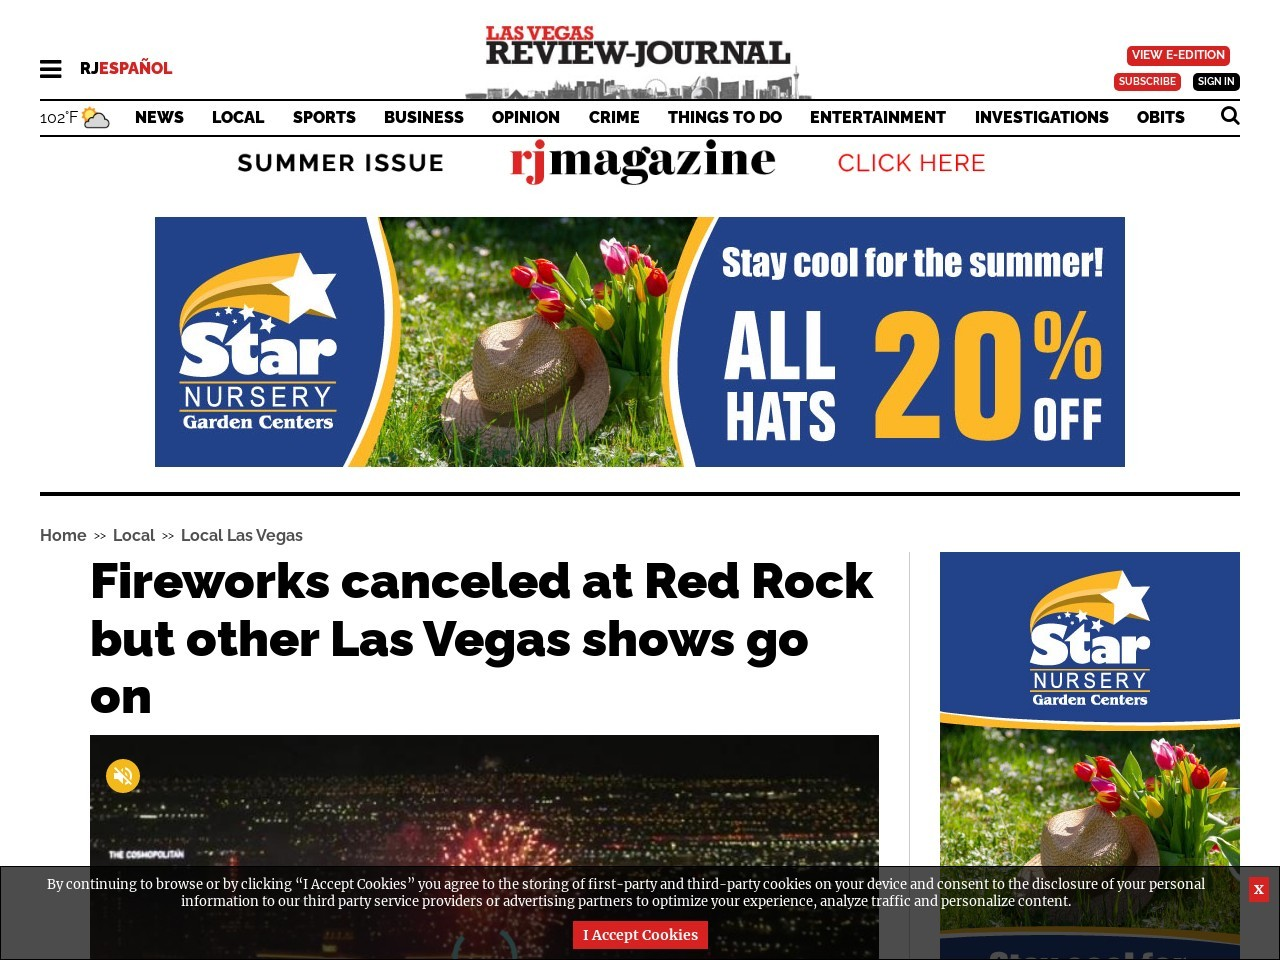 Fireworks canceled at Red Rock but other Las Vegas shows go on